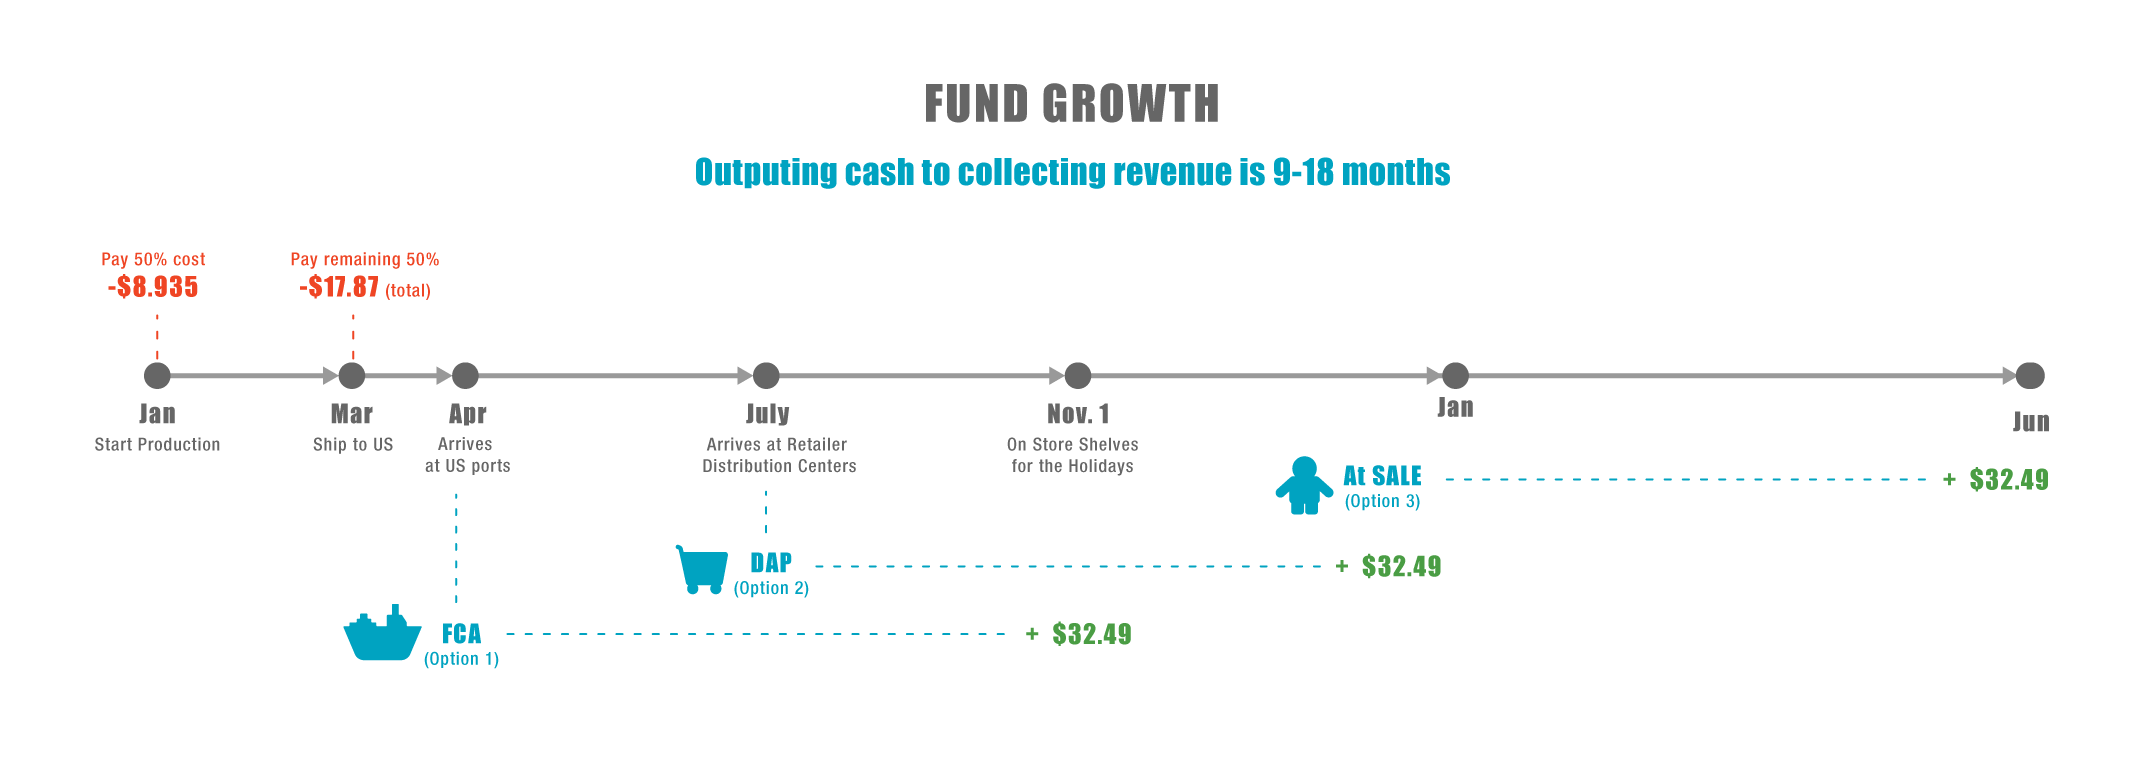 How to make money in retail its important to think of cash flow in terms of time not just dollars lets look at an example order and see when cash is spent and when the company will pooptronica